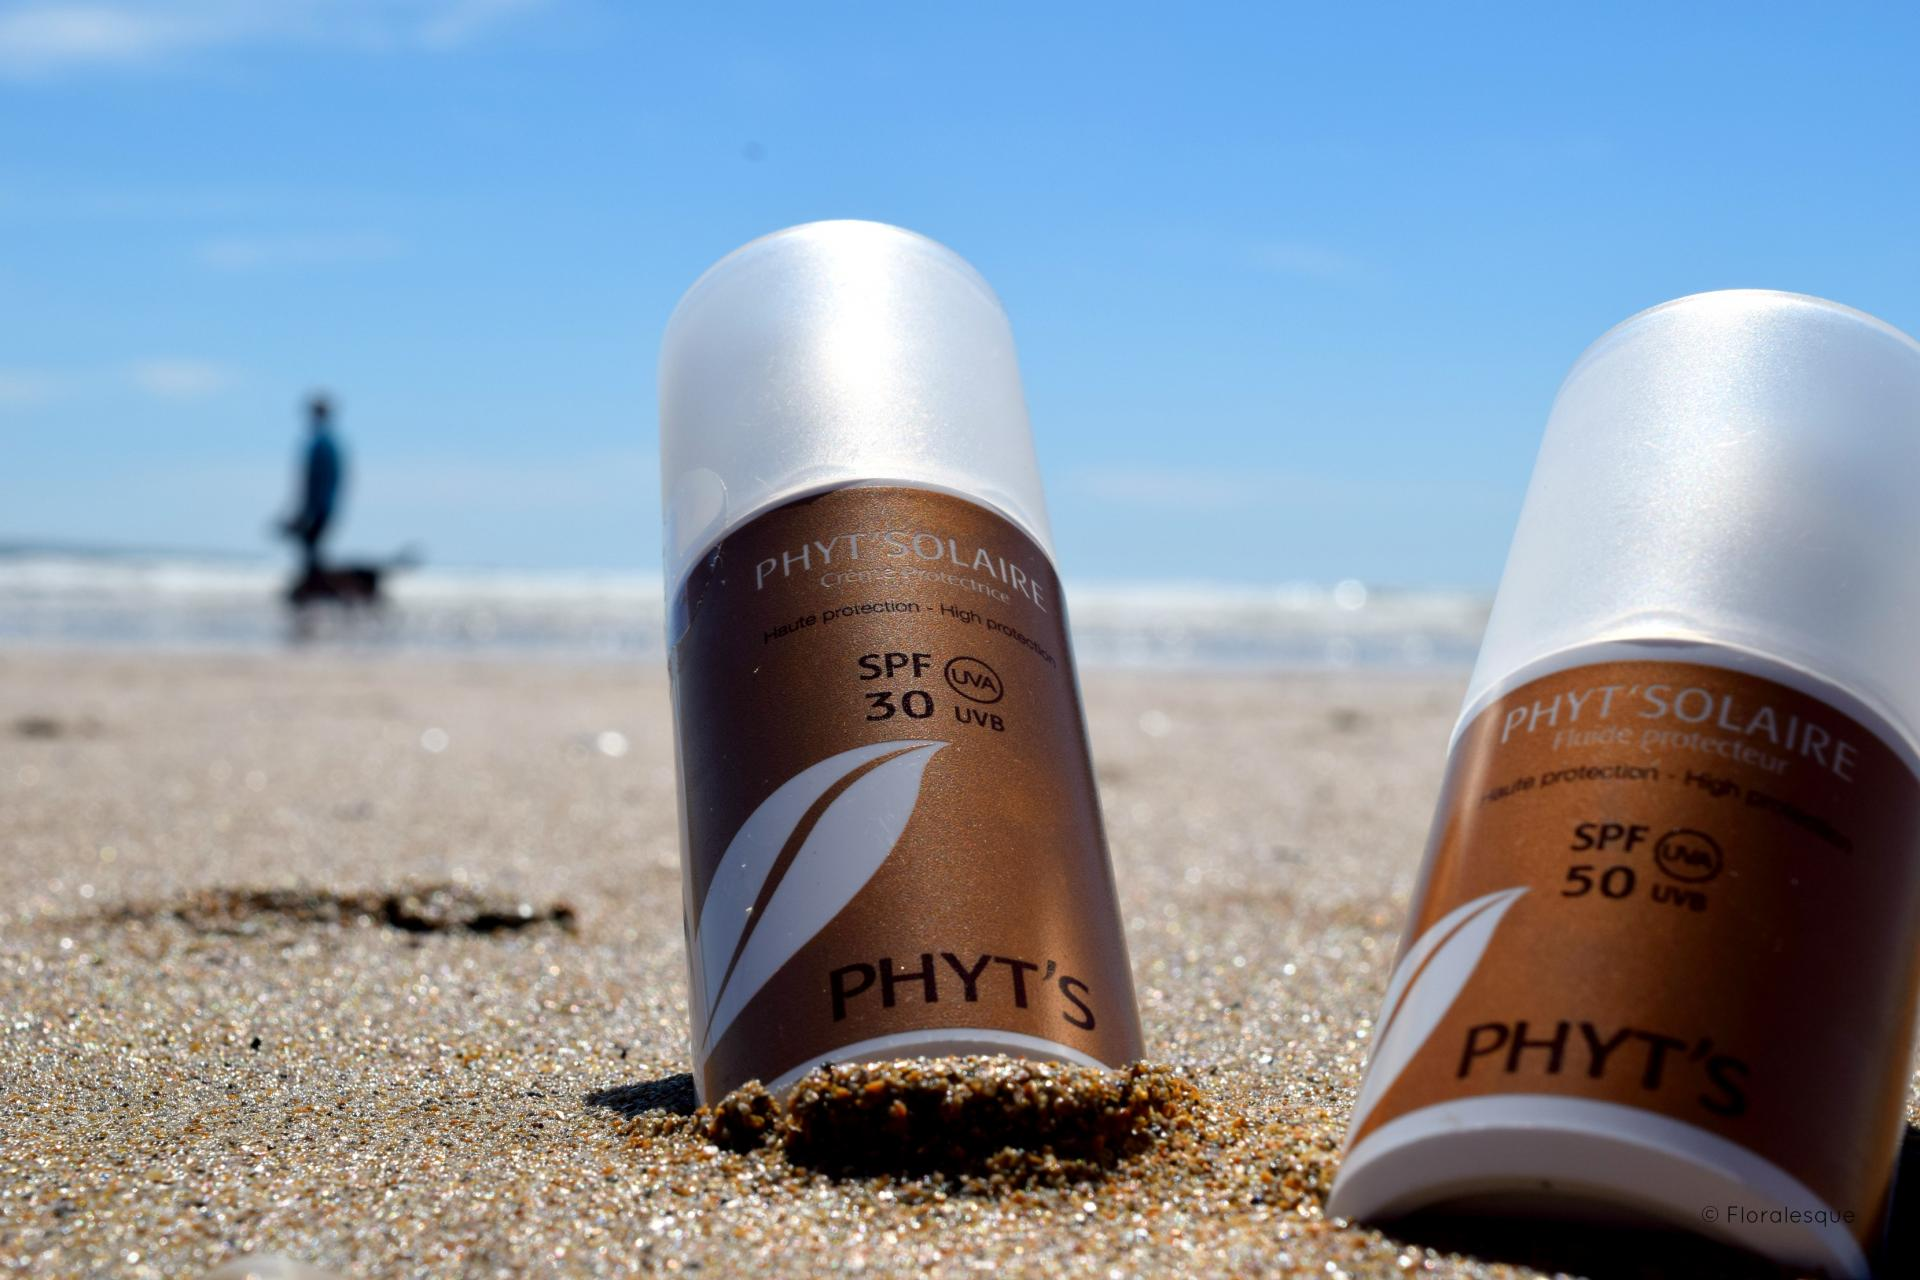 Review - PHYT'S Protective Fluid SPF 50 & SPF 30